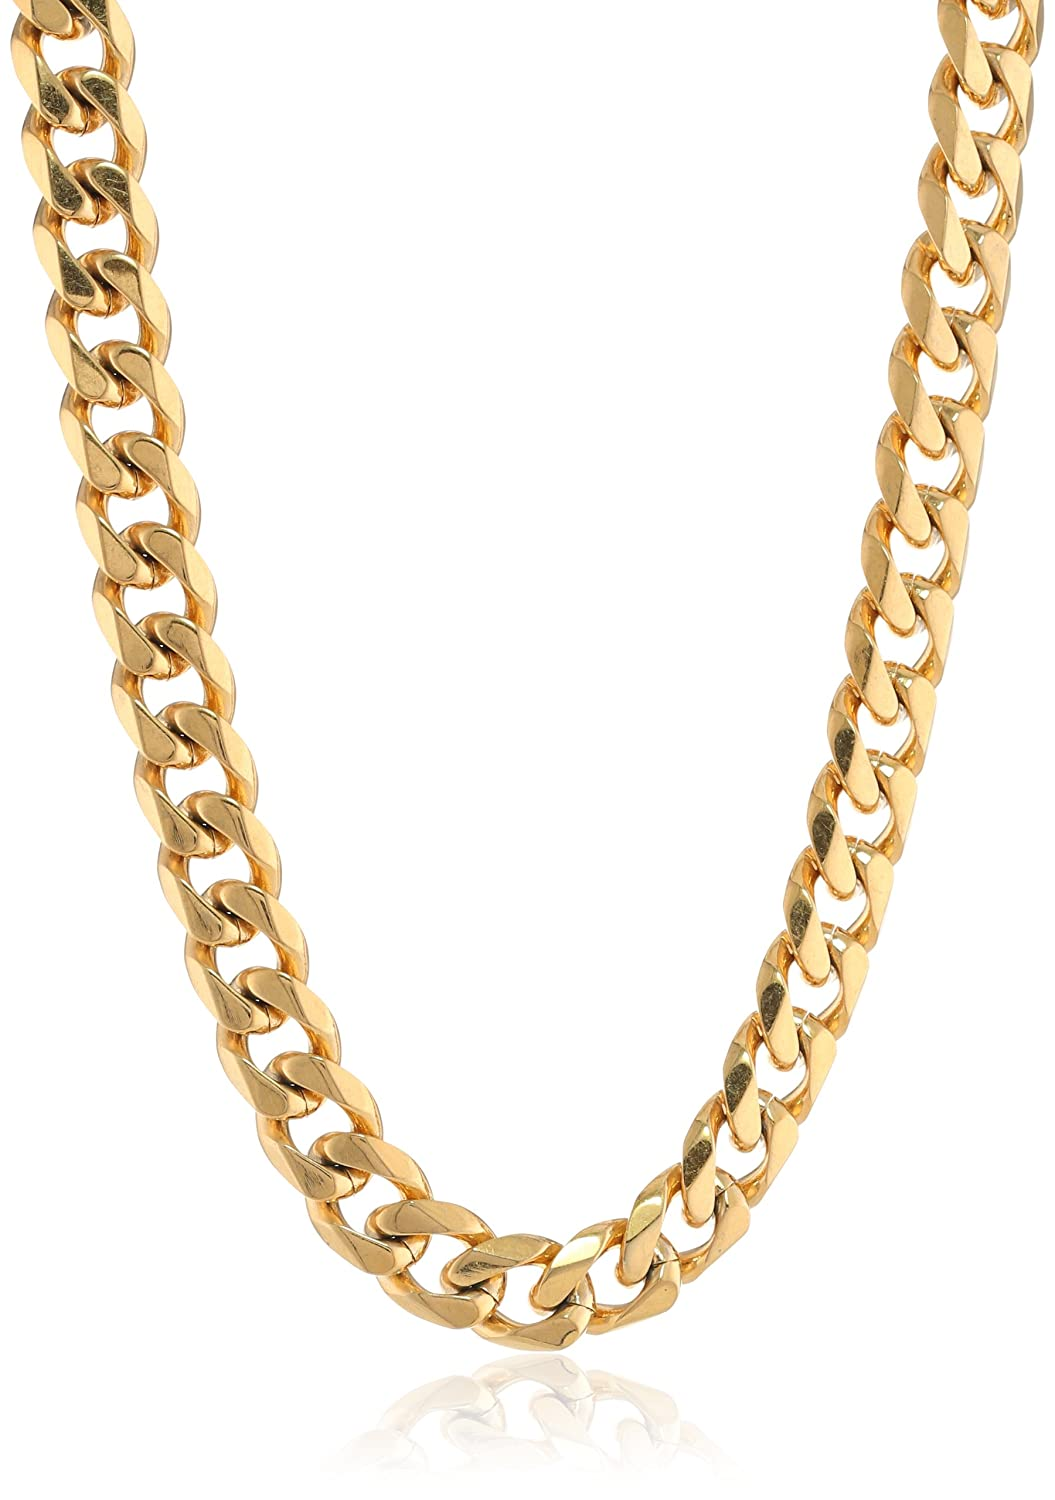 vermeil strand necklace chain good and up stone close tools girl gold s products